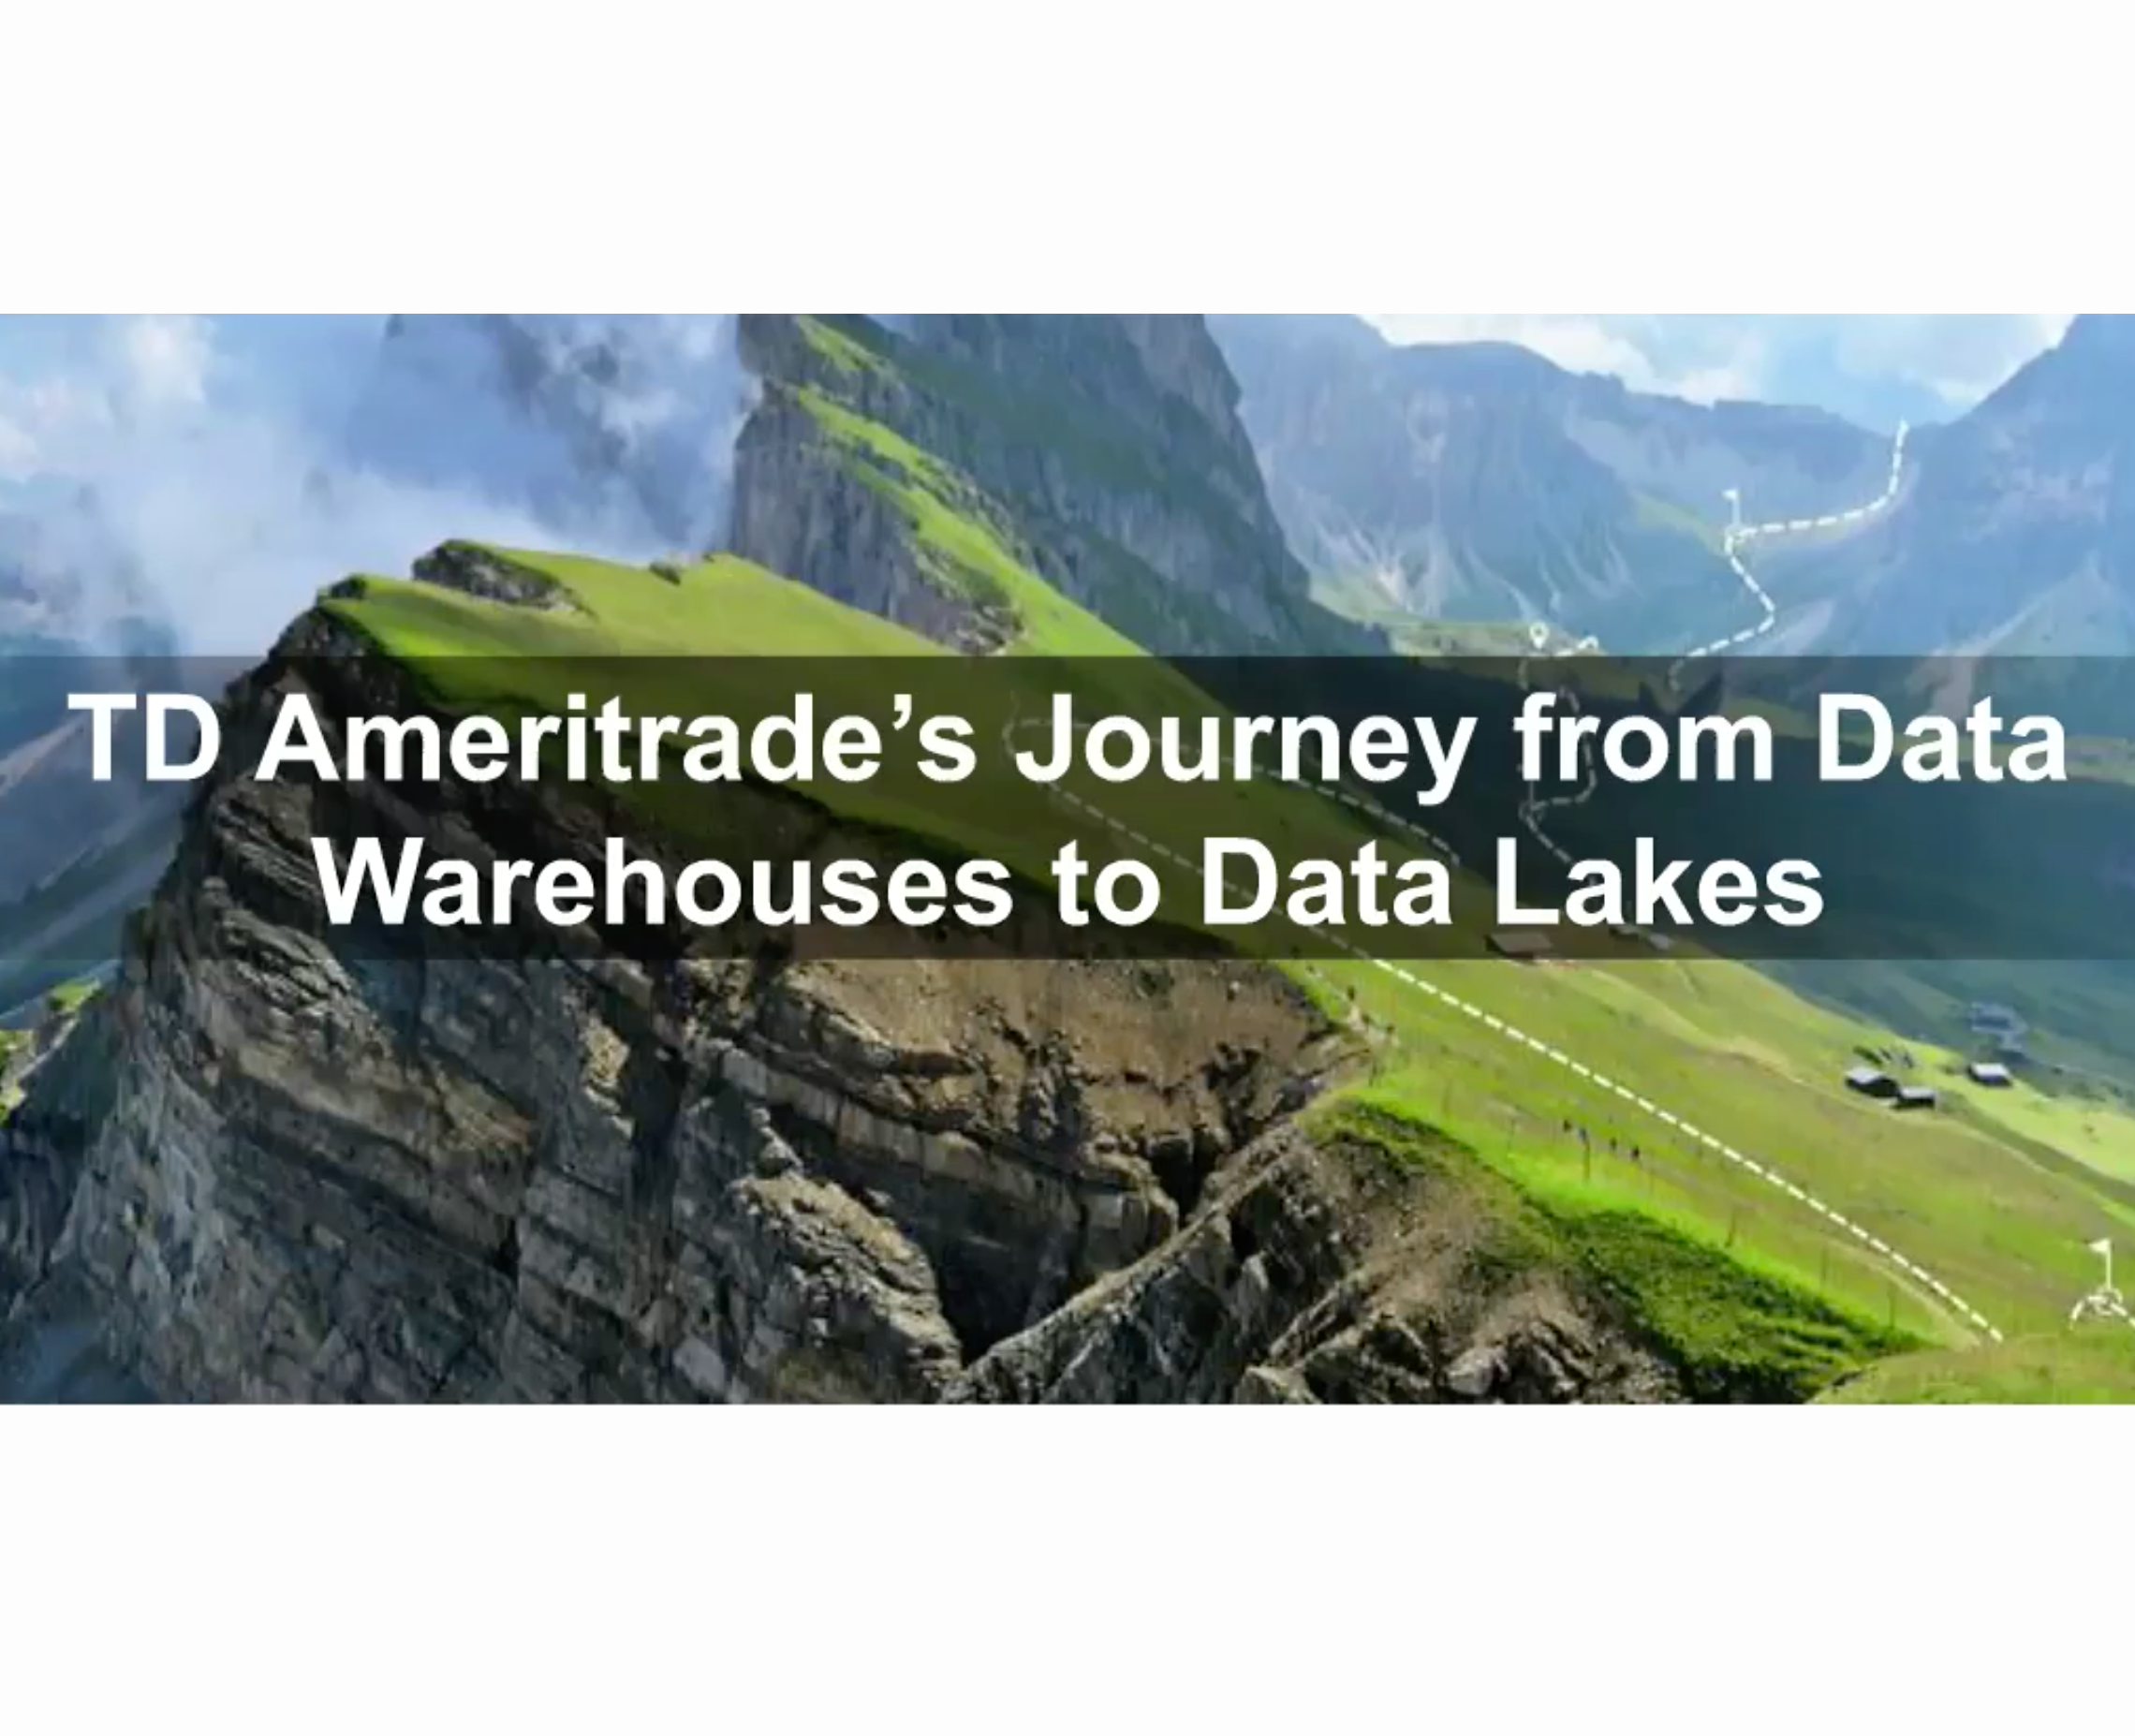 TB Ameritrade's Journey from Data Warehouses to Data Lakes